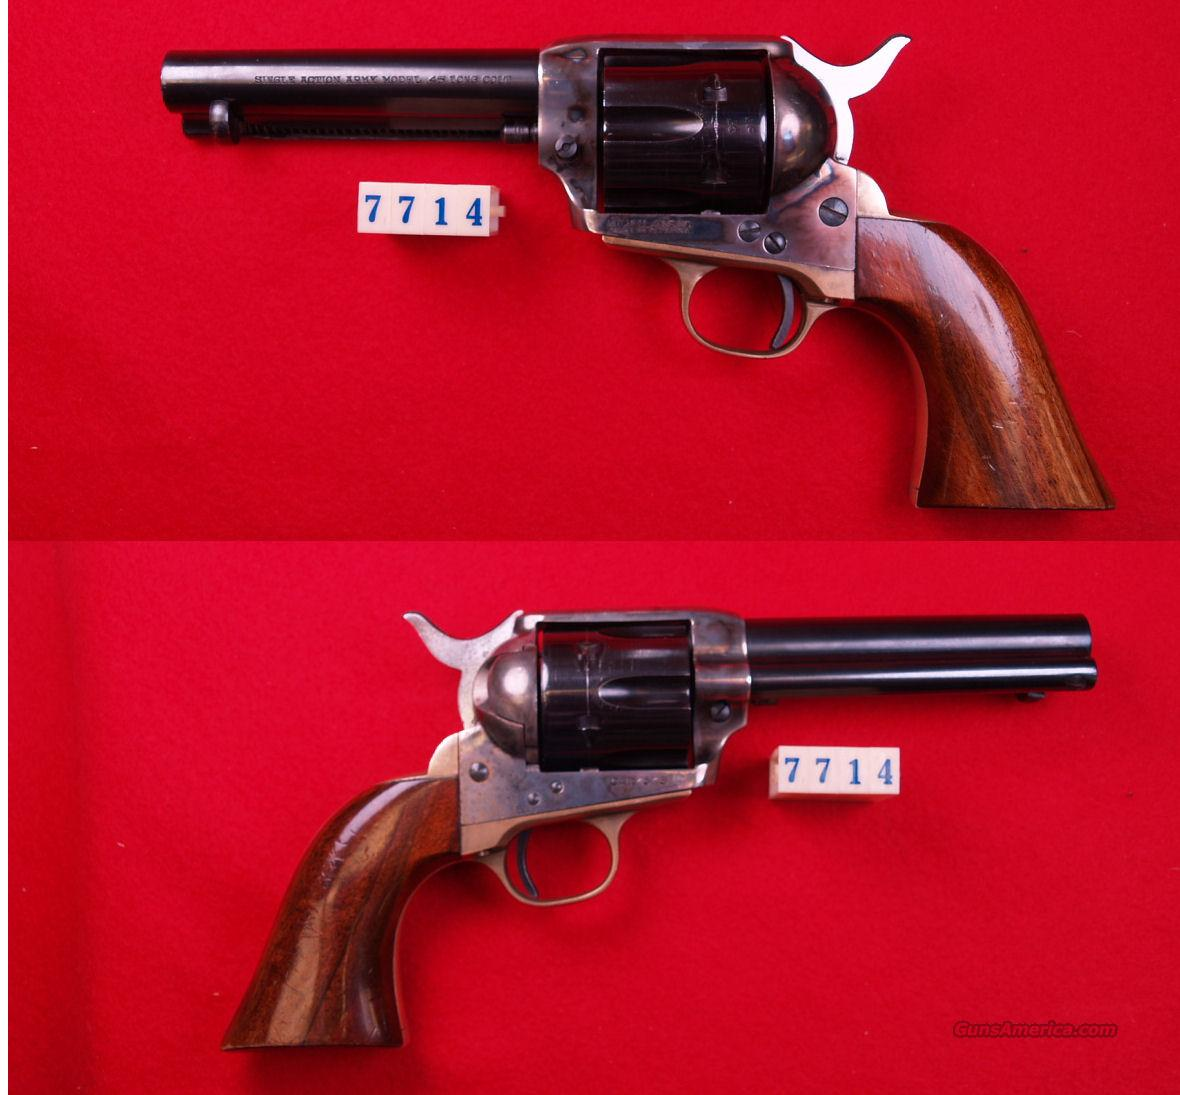 colt single girls Developed as a joint venture between colt firearms and the union metallic cartridge company, the 45 colt was introduced in the colt single action army—which would be known as the 'peacemaker' of western fame in 1875, it became the standard issue for the us army, and remained so until replaced by the 38 long colt in 1892, though it.